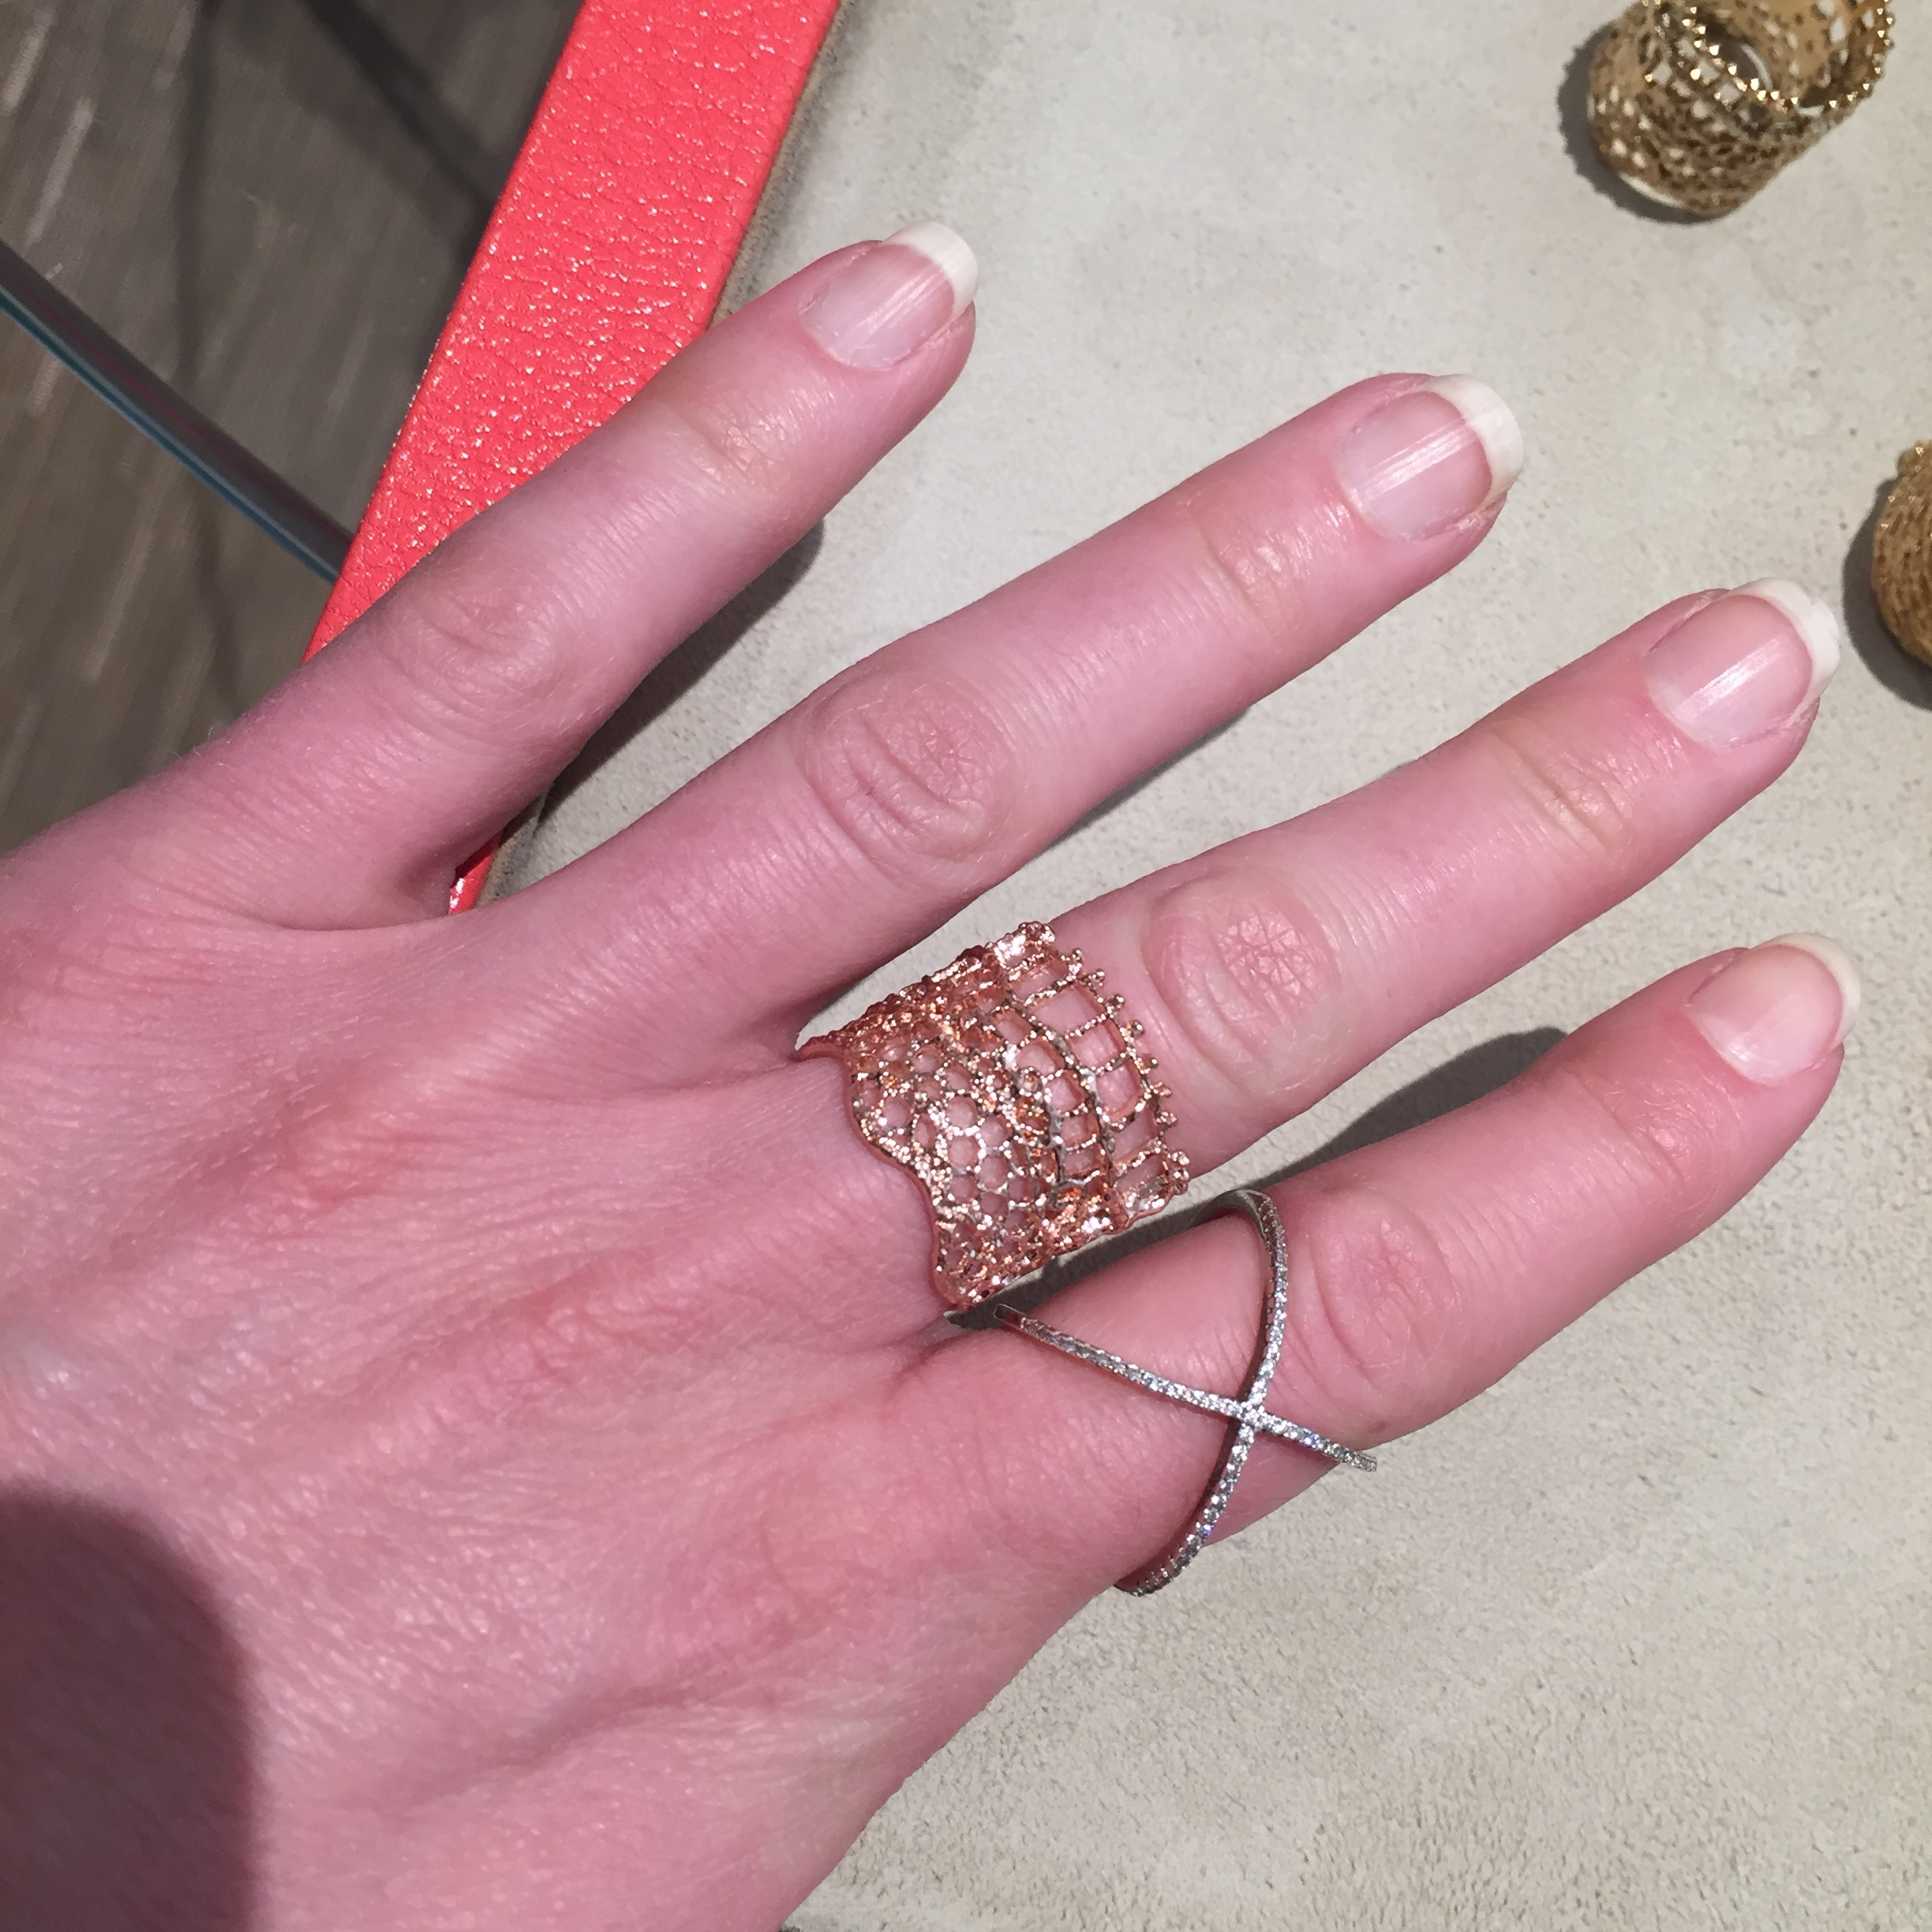 Vintage Lace Ring in rose gold